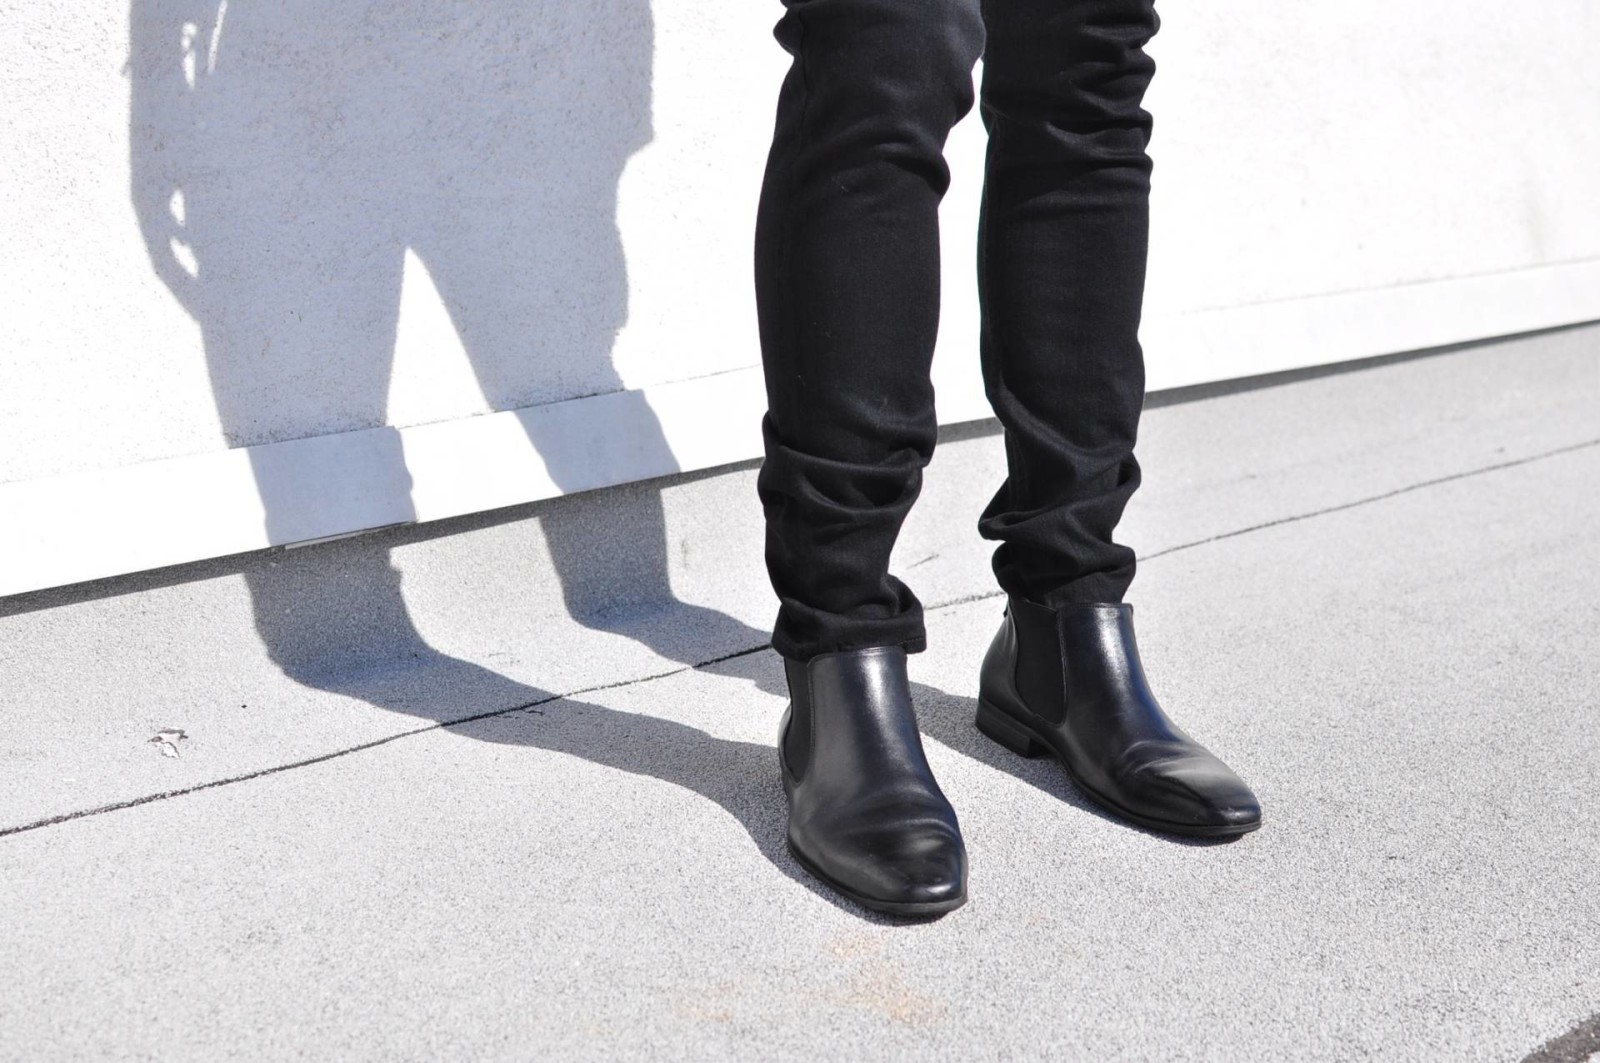 Chelsea Boots for Men Style Guide - Miss Zias